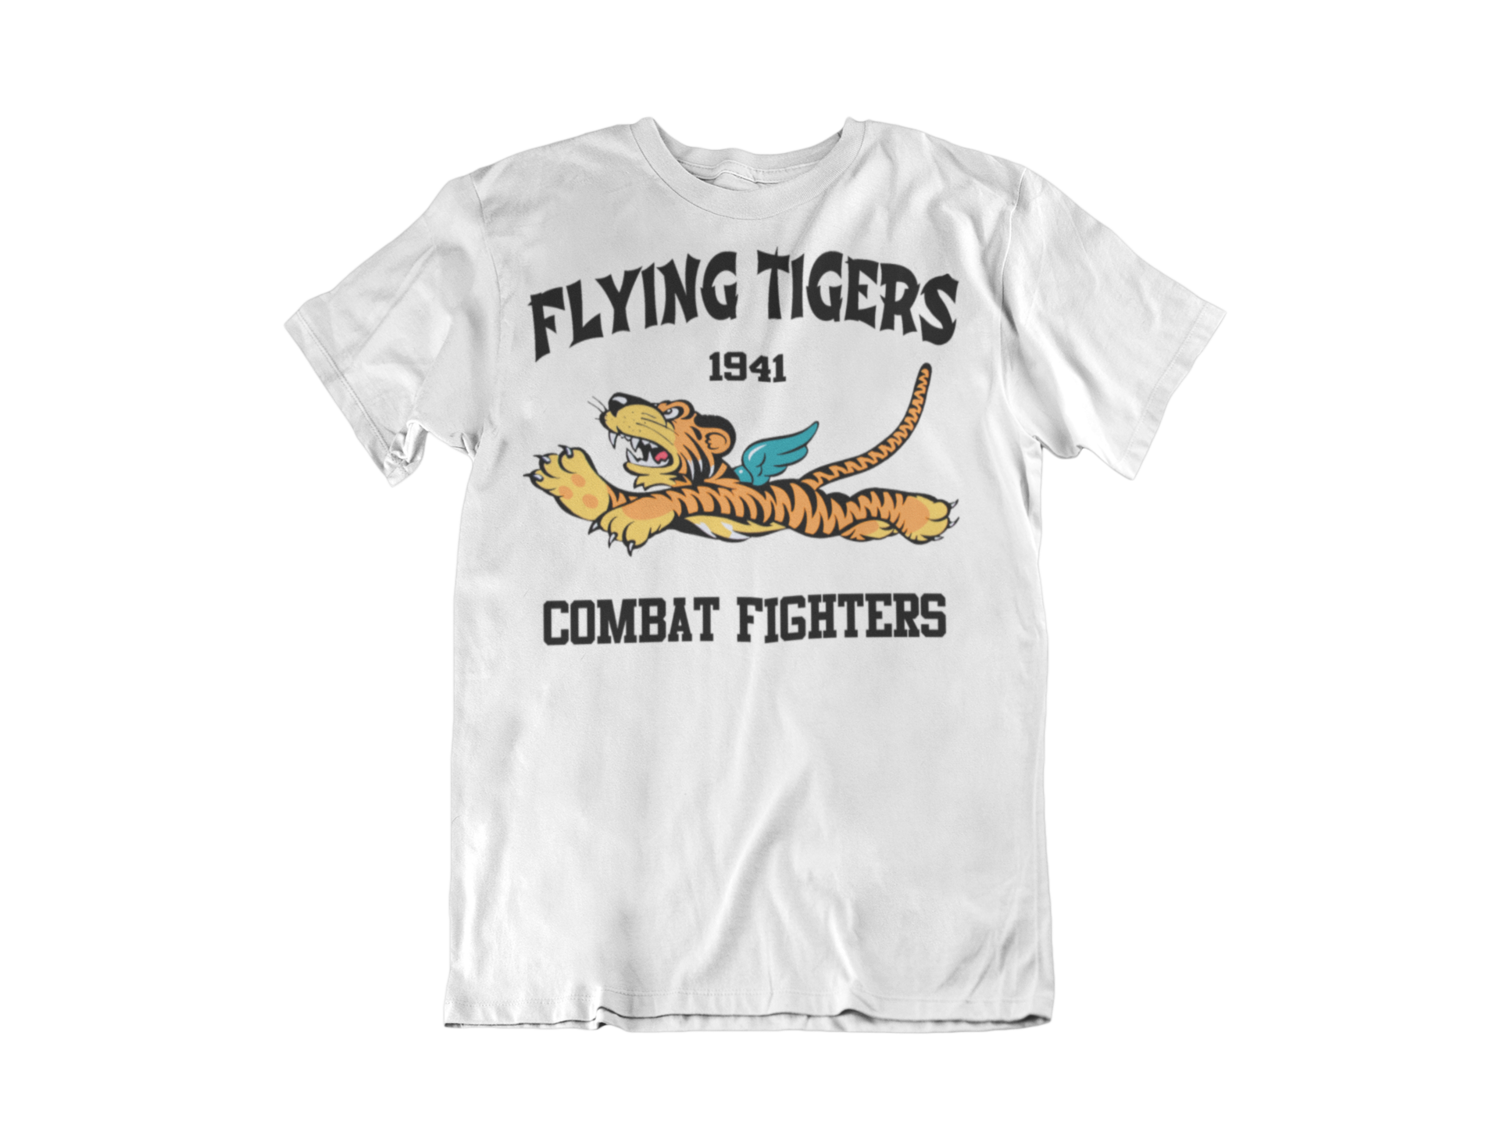 FLYING TIGERS T-SHIRT FOR MEN